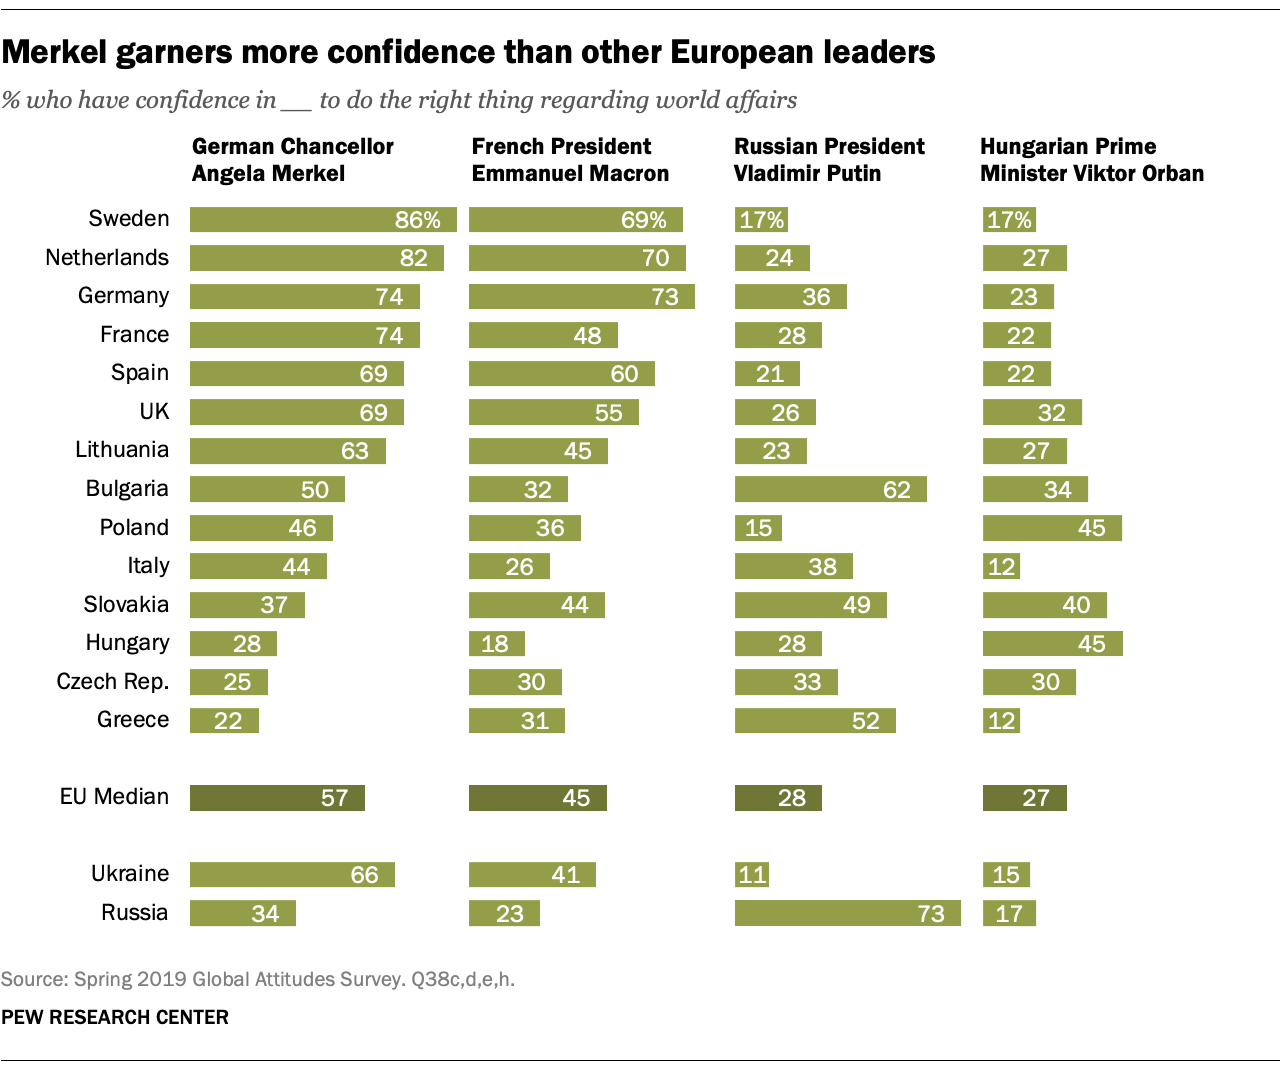 Merkel garners more confidence than other European leaders